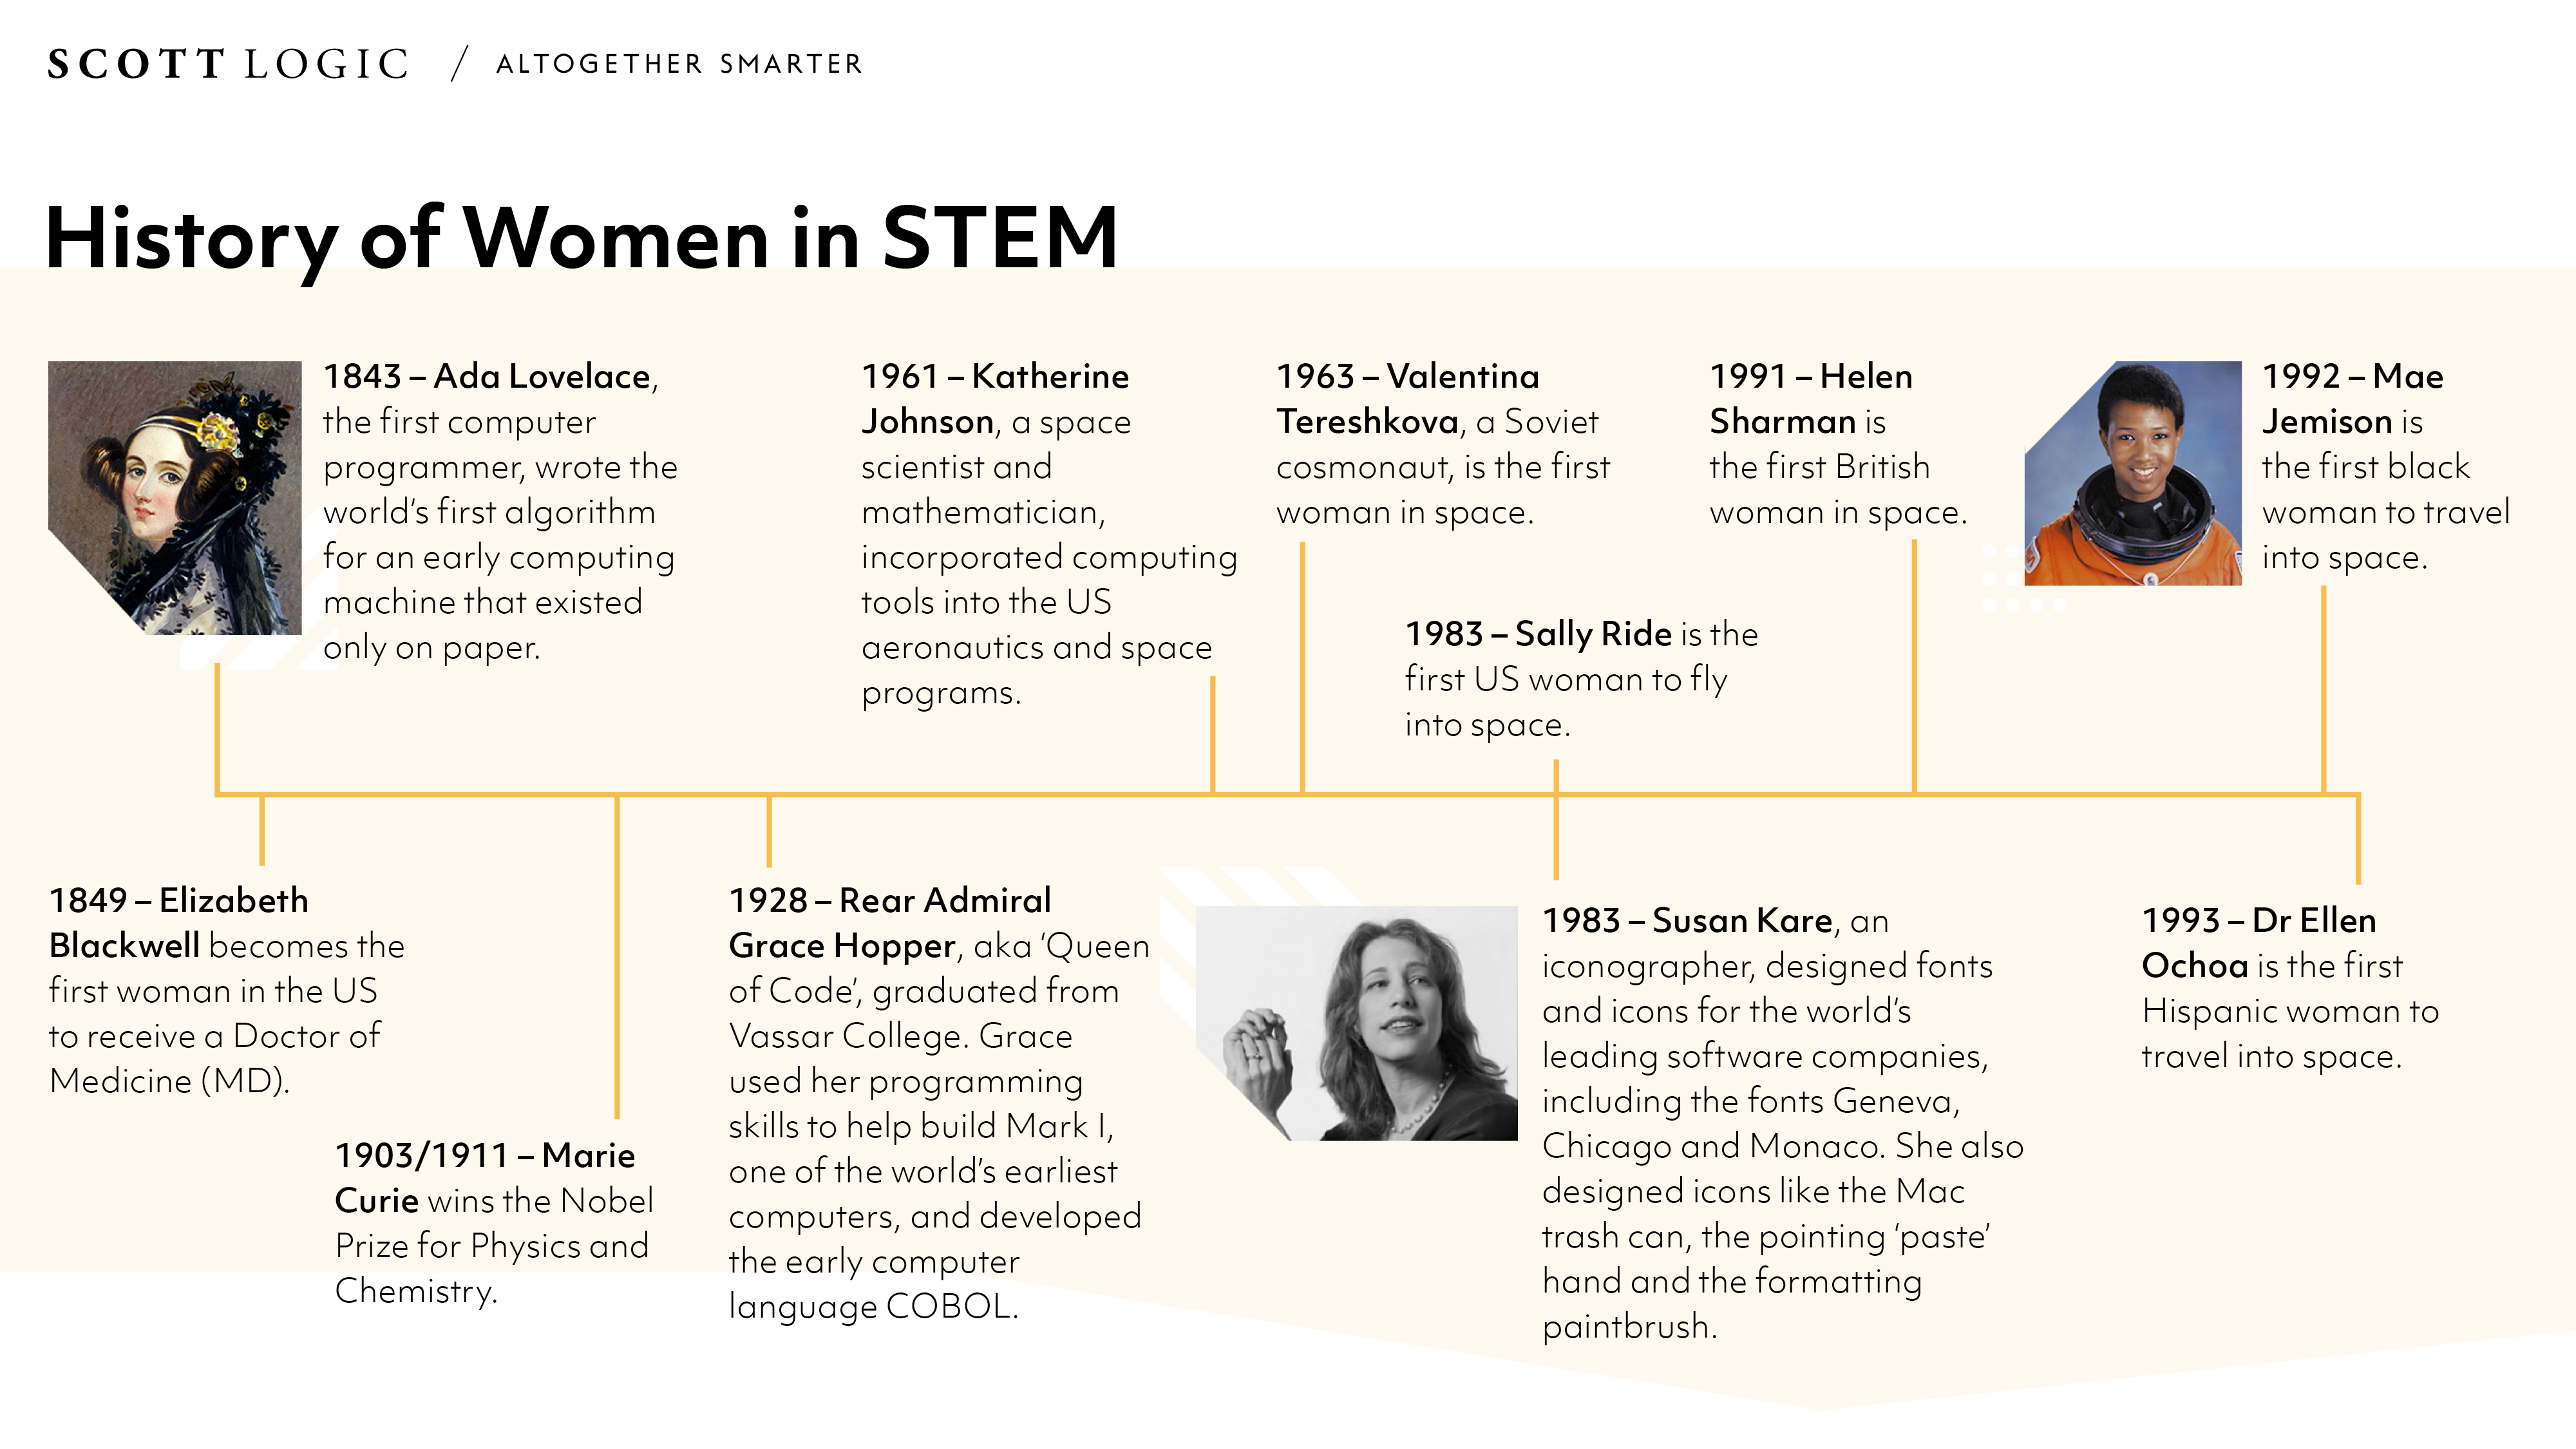 History of Women in STEM